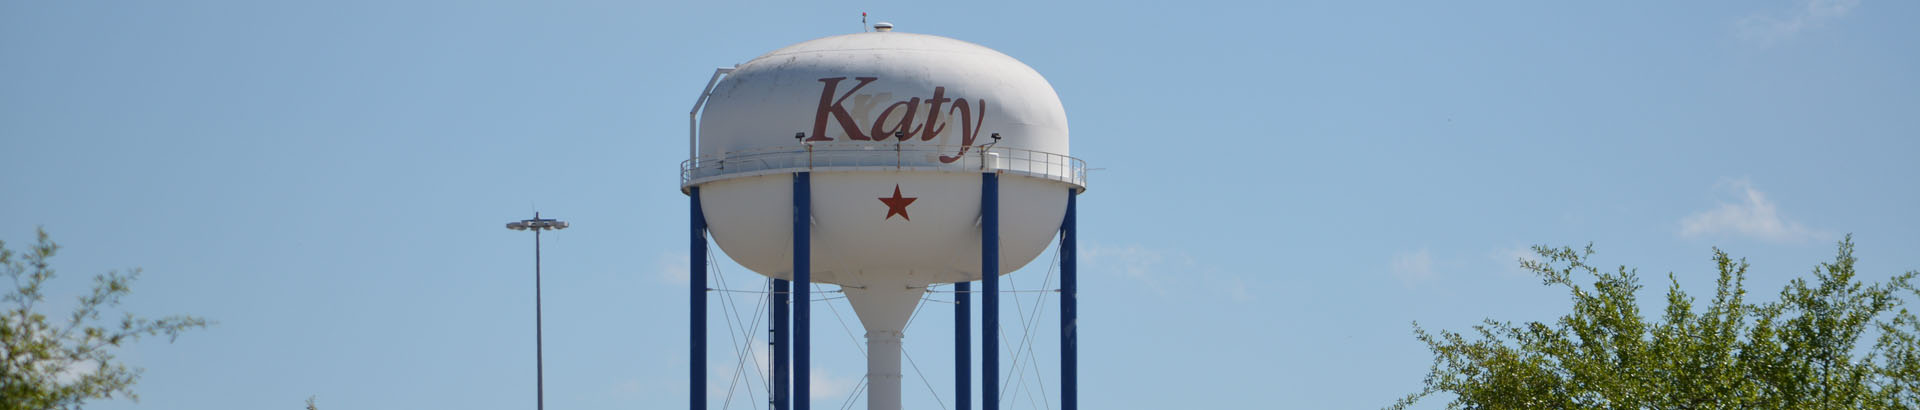 Katy Water